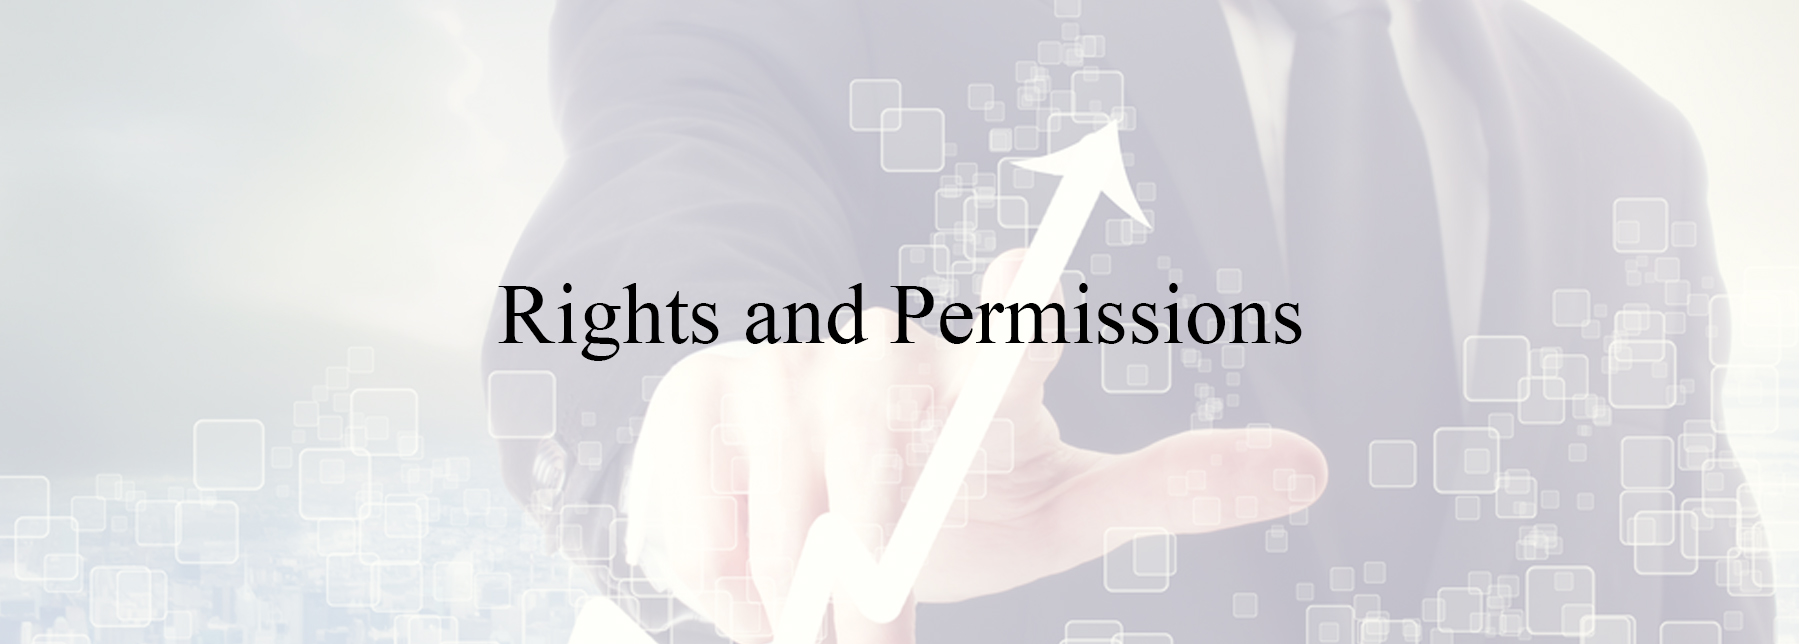 rights and permissions 1